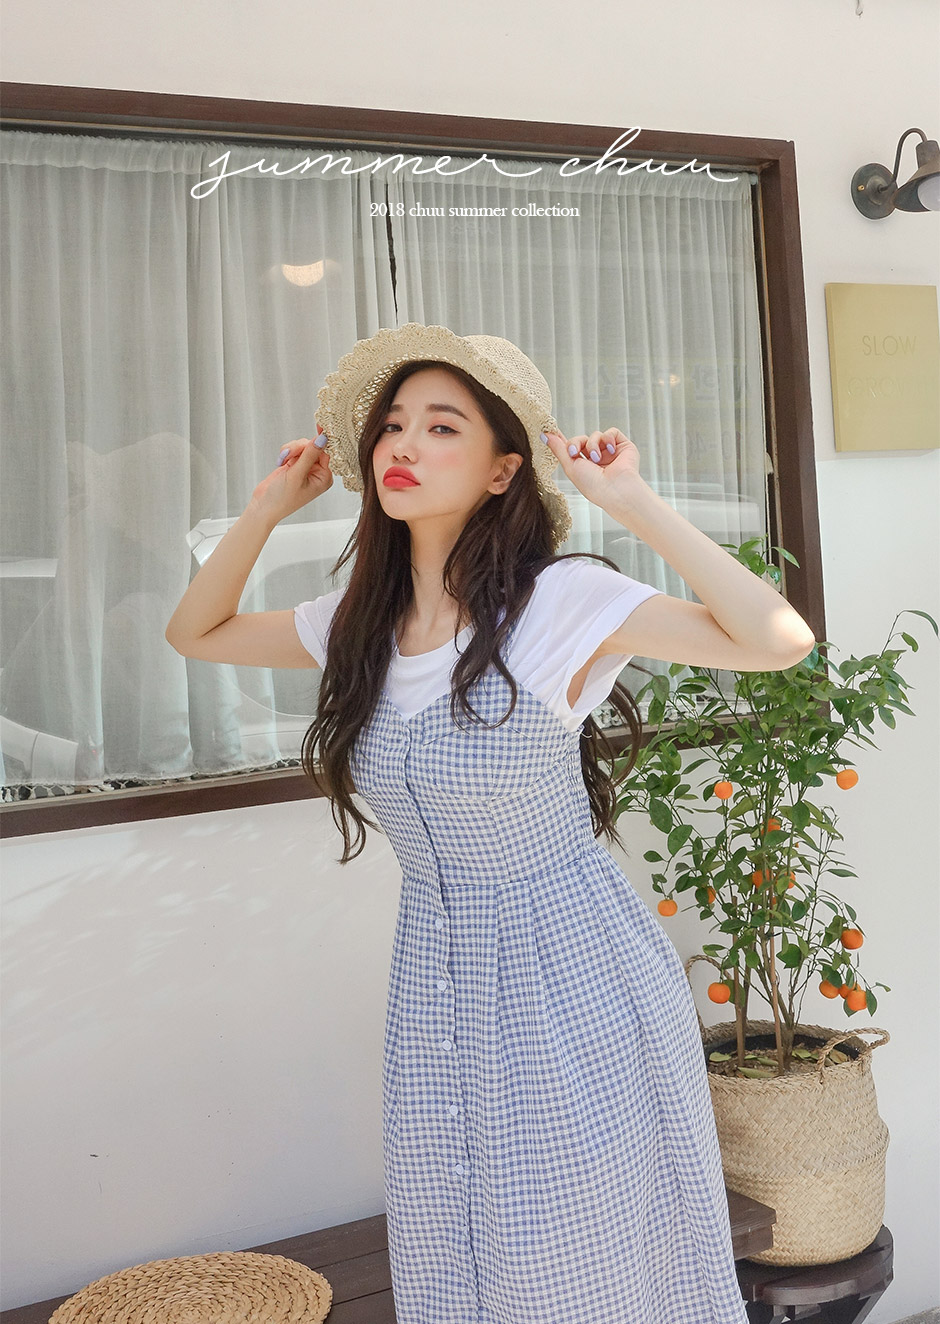 //cdn.nhanh.vn/cdn/store/29770/psCT/20180909/8968149/CHUU_Understand_Me_Checkered_Dress_(8).jpg